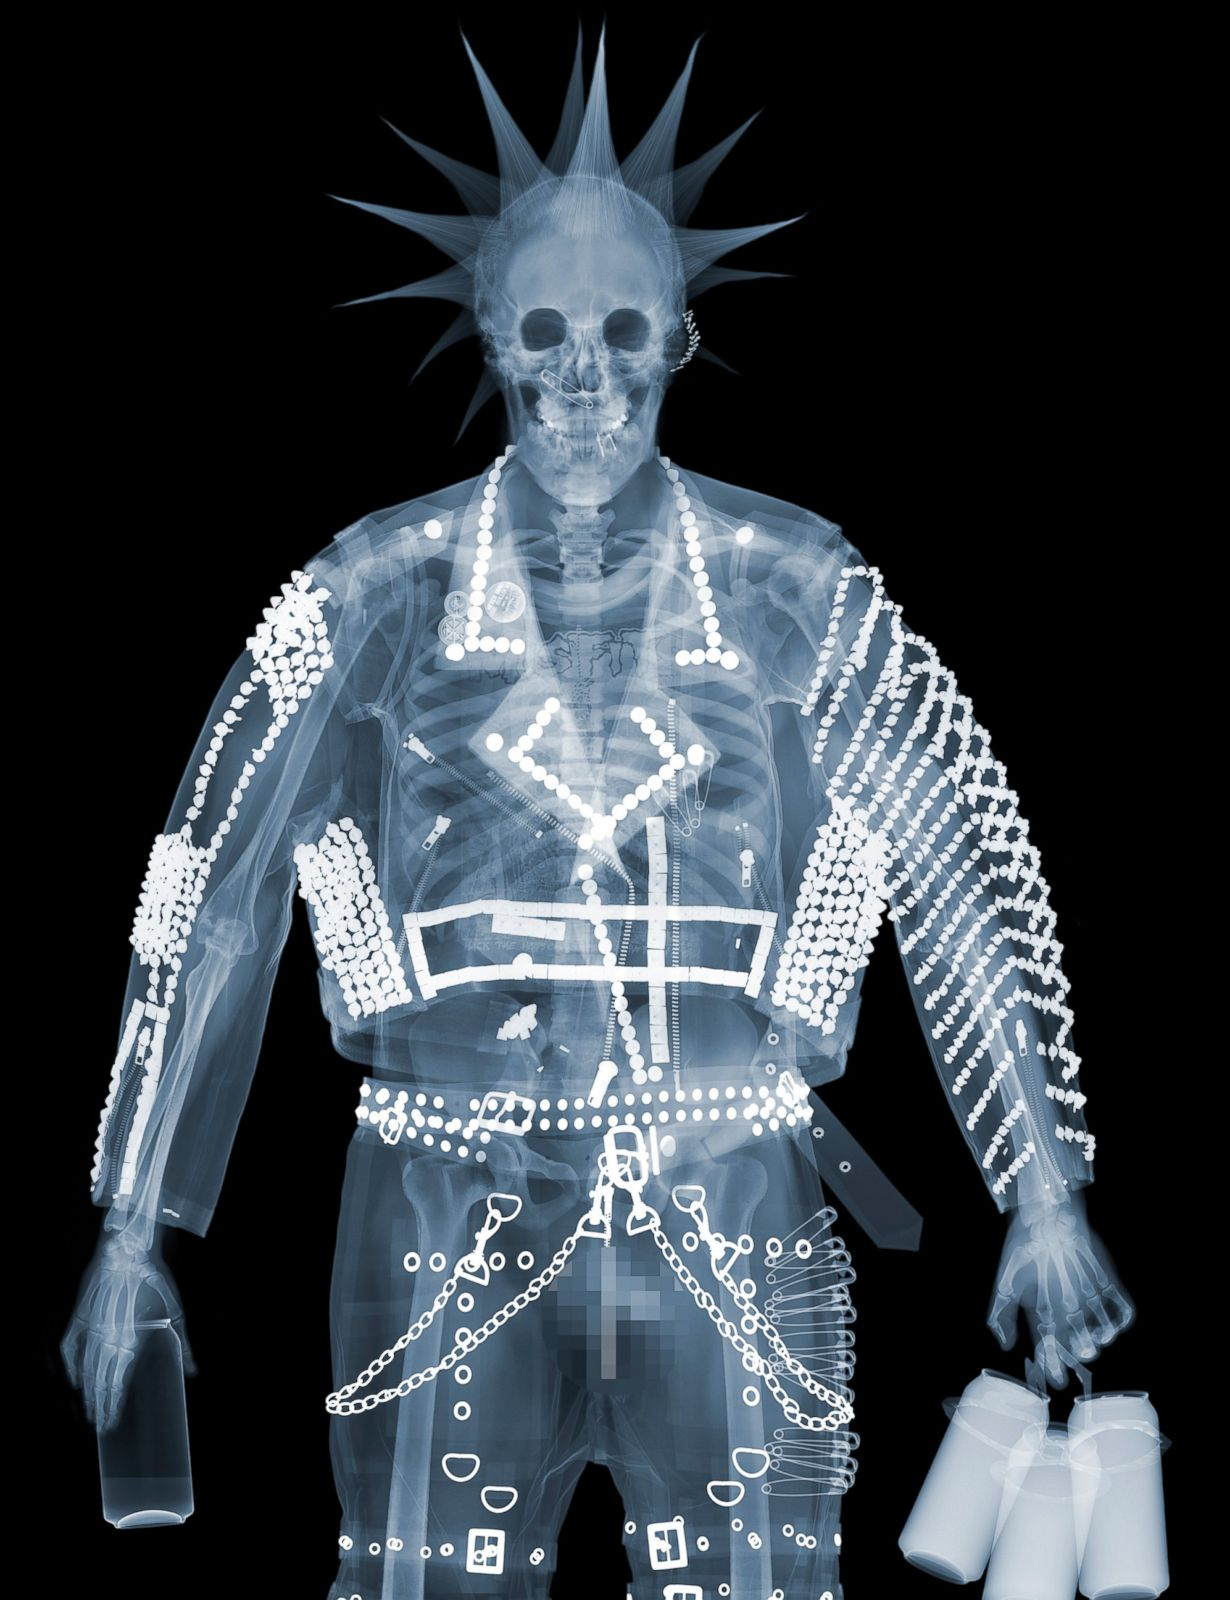 Punk picture nick veasey 39 s 39 x ray art 39 abc news for X ray painting